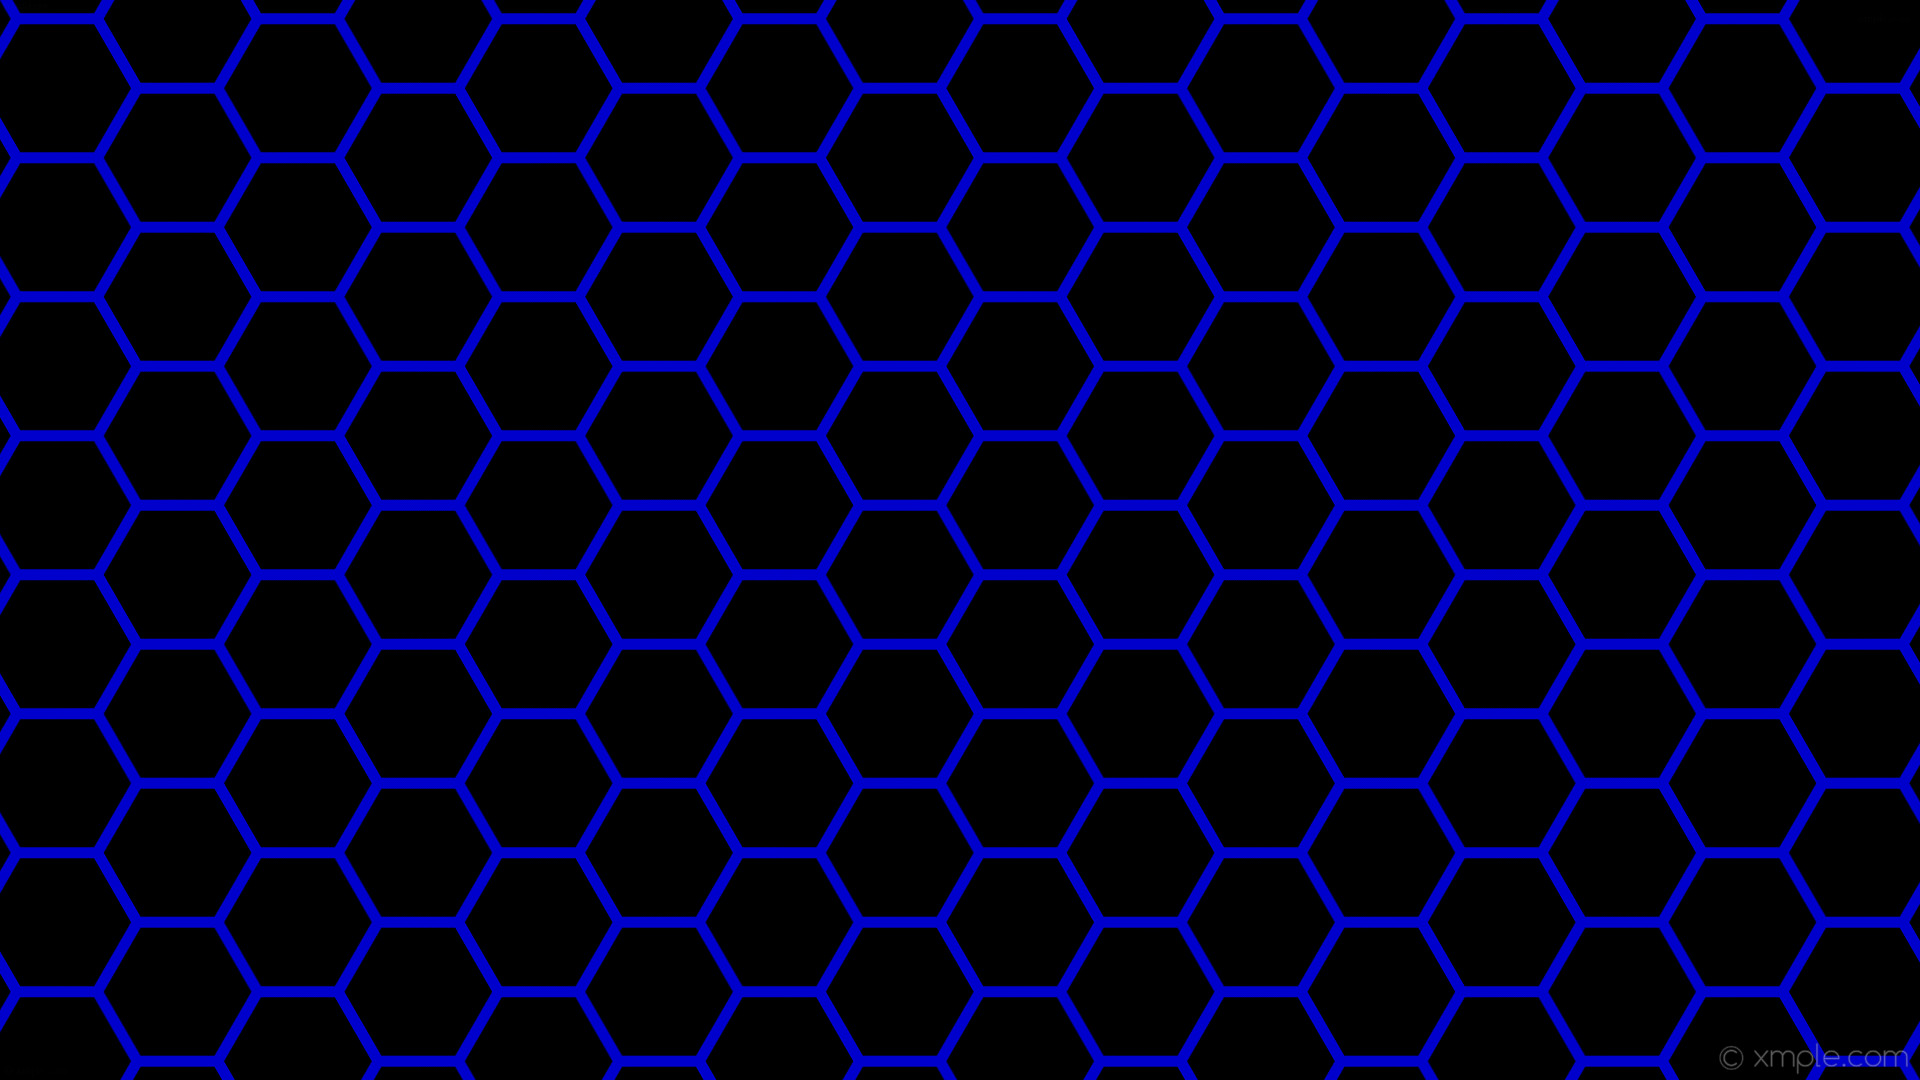 Res: 1920x1080, wallpaper blue black beehive hexagon honeycomb medium blue #000000 #0000cd  diagonal 30° 11px